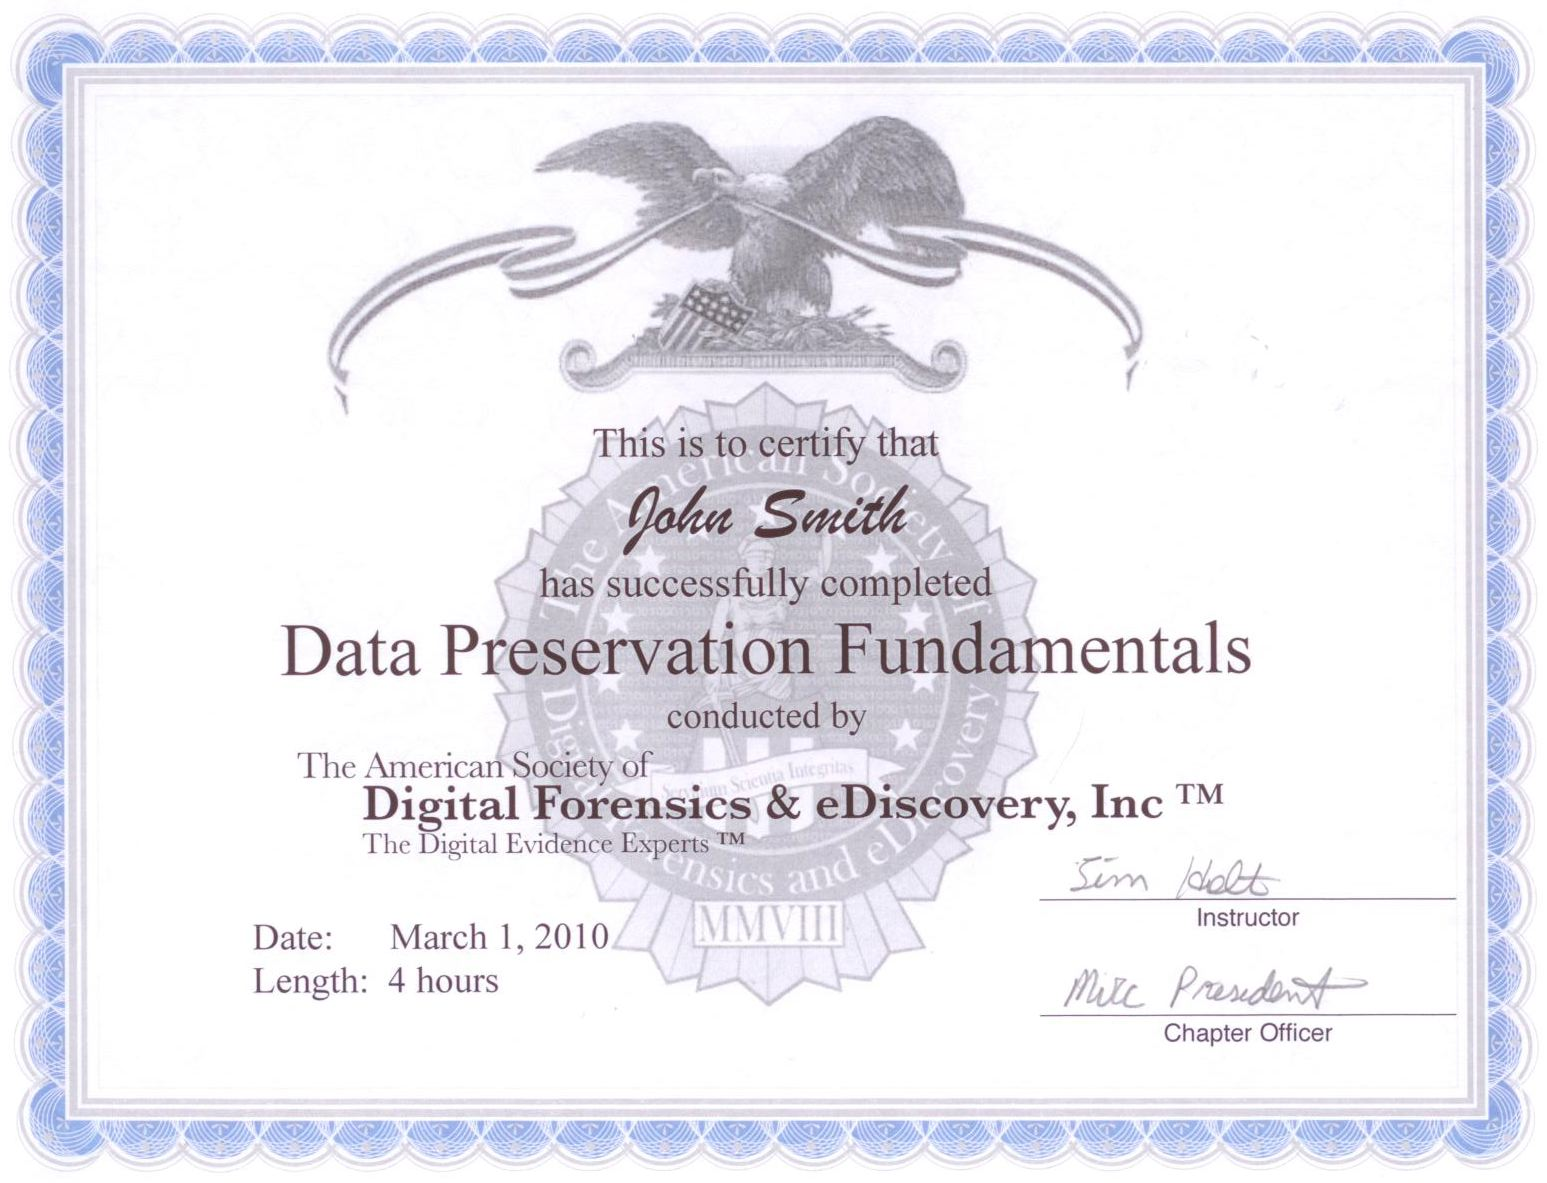 The American Society Of Digital Forensics Ediscovery Data